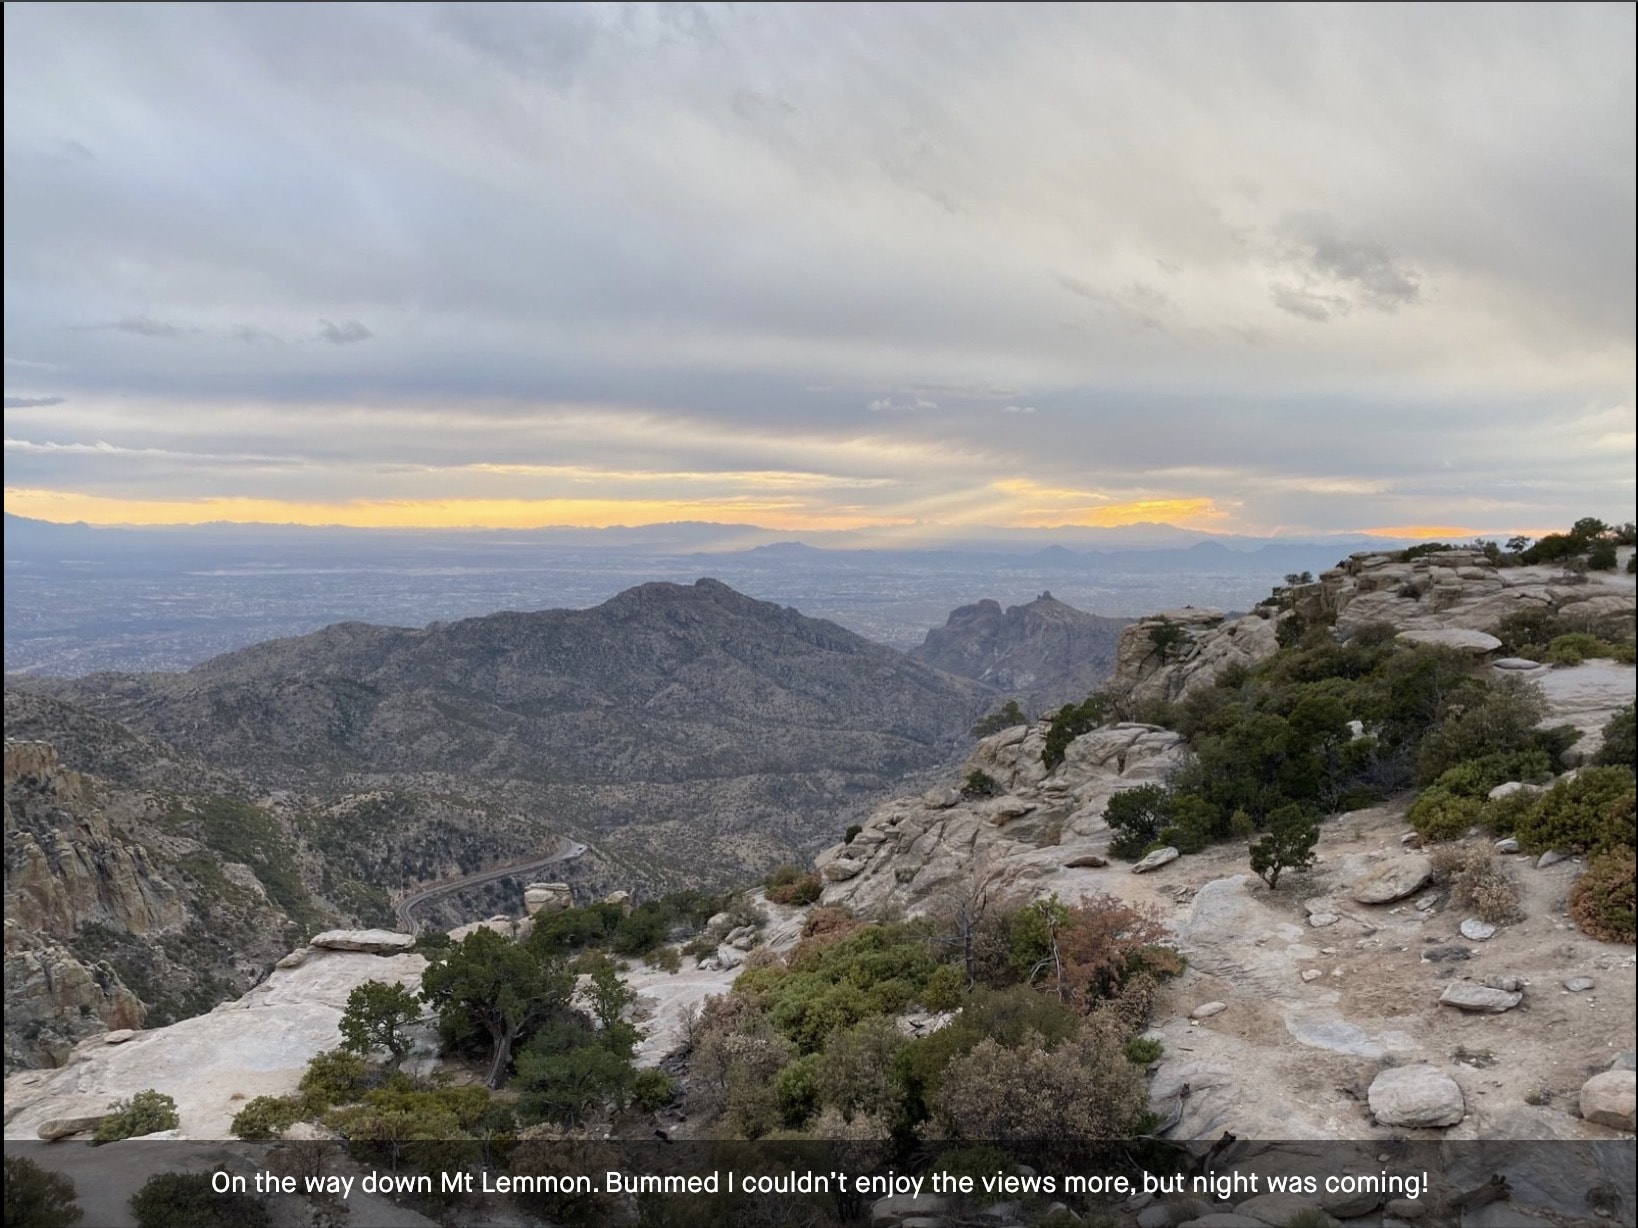 Looking down towards Tucson from high up on the paved road leading to Mt Lemmon.